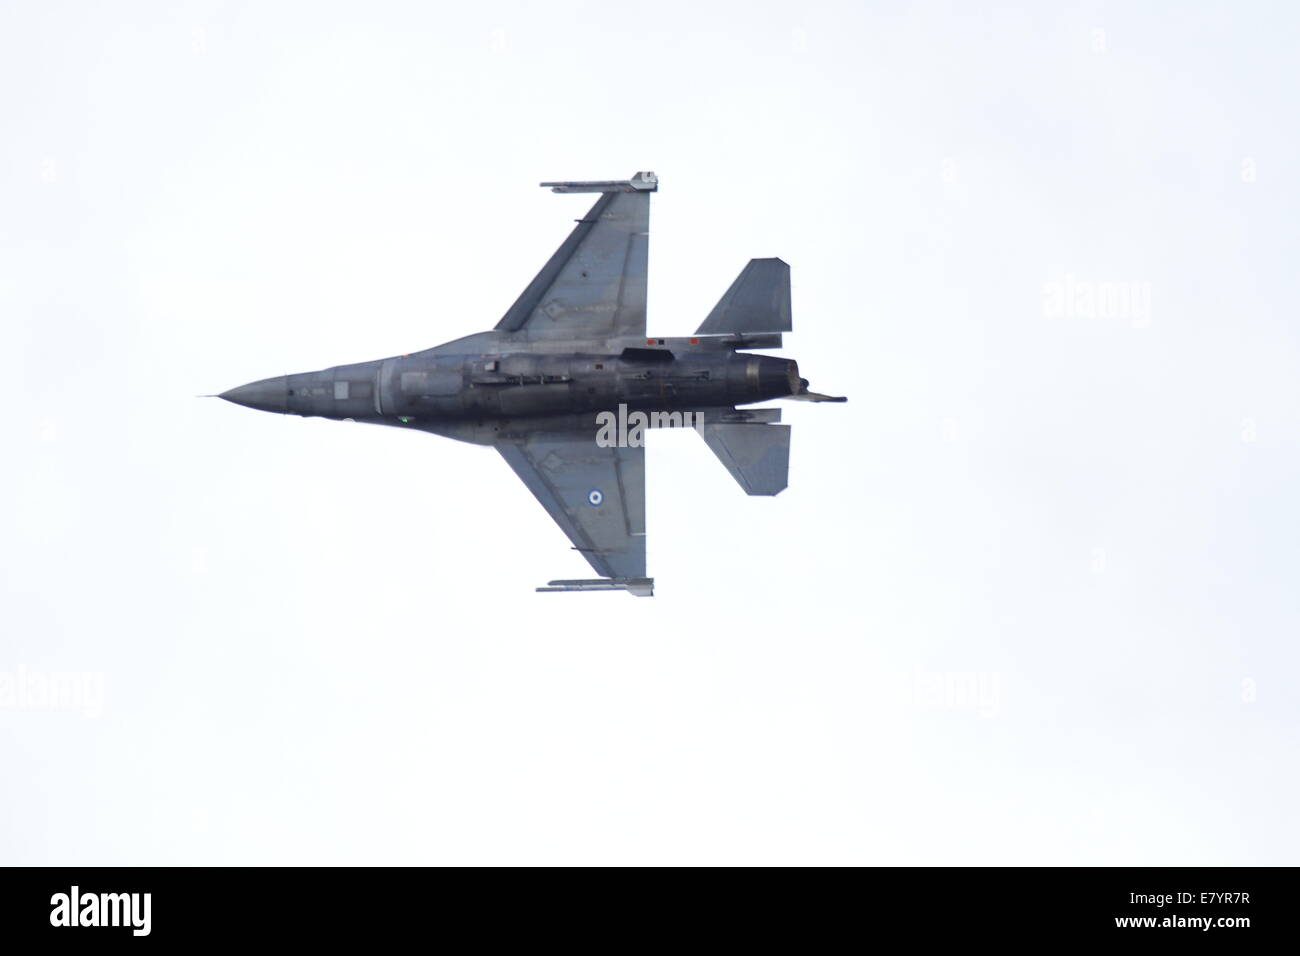 Acharnes, Greece. 26th September 2014. An Hellenic Air Force F-16 Block 52+ from the Demo Team Zeus performs at - Stock Image